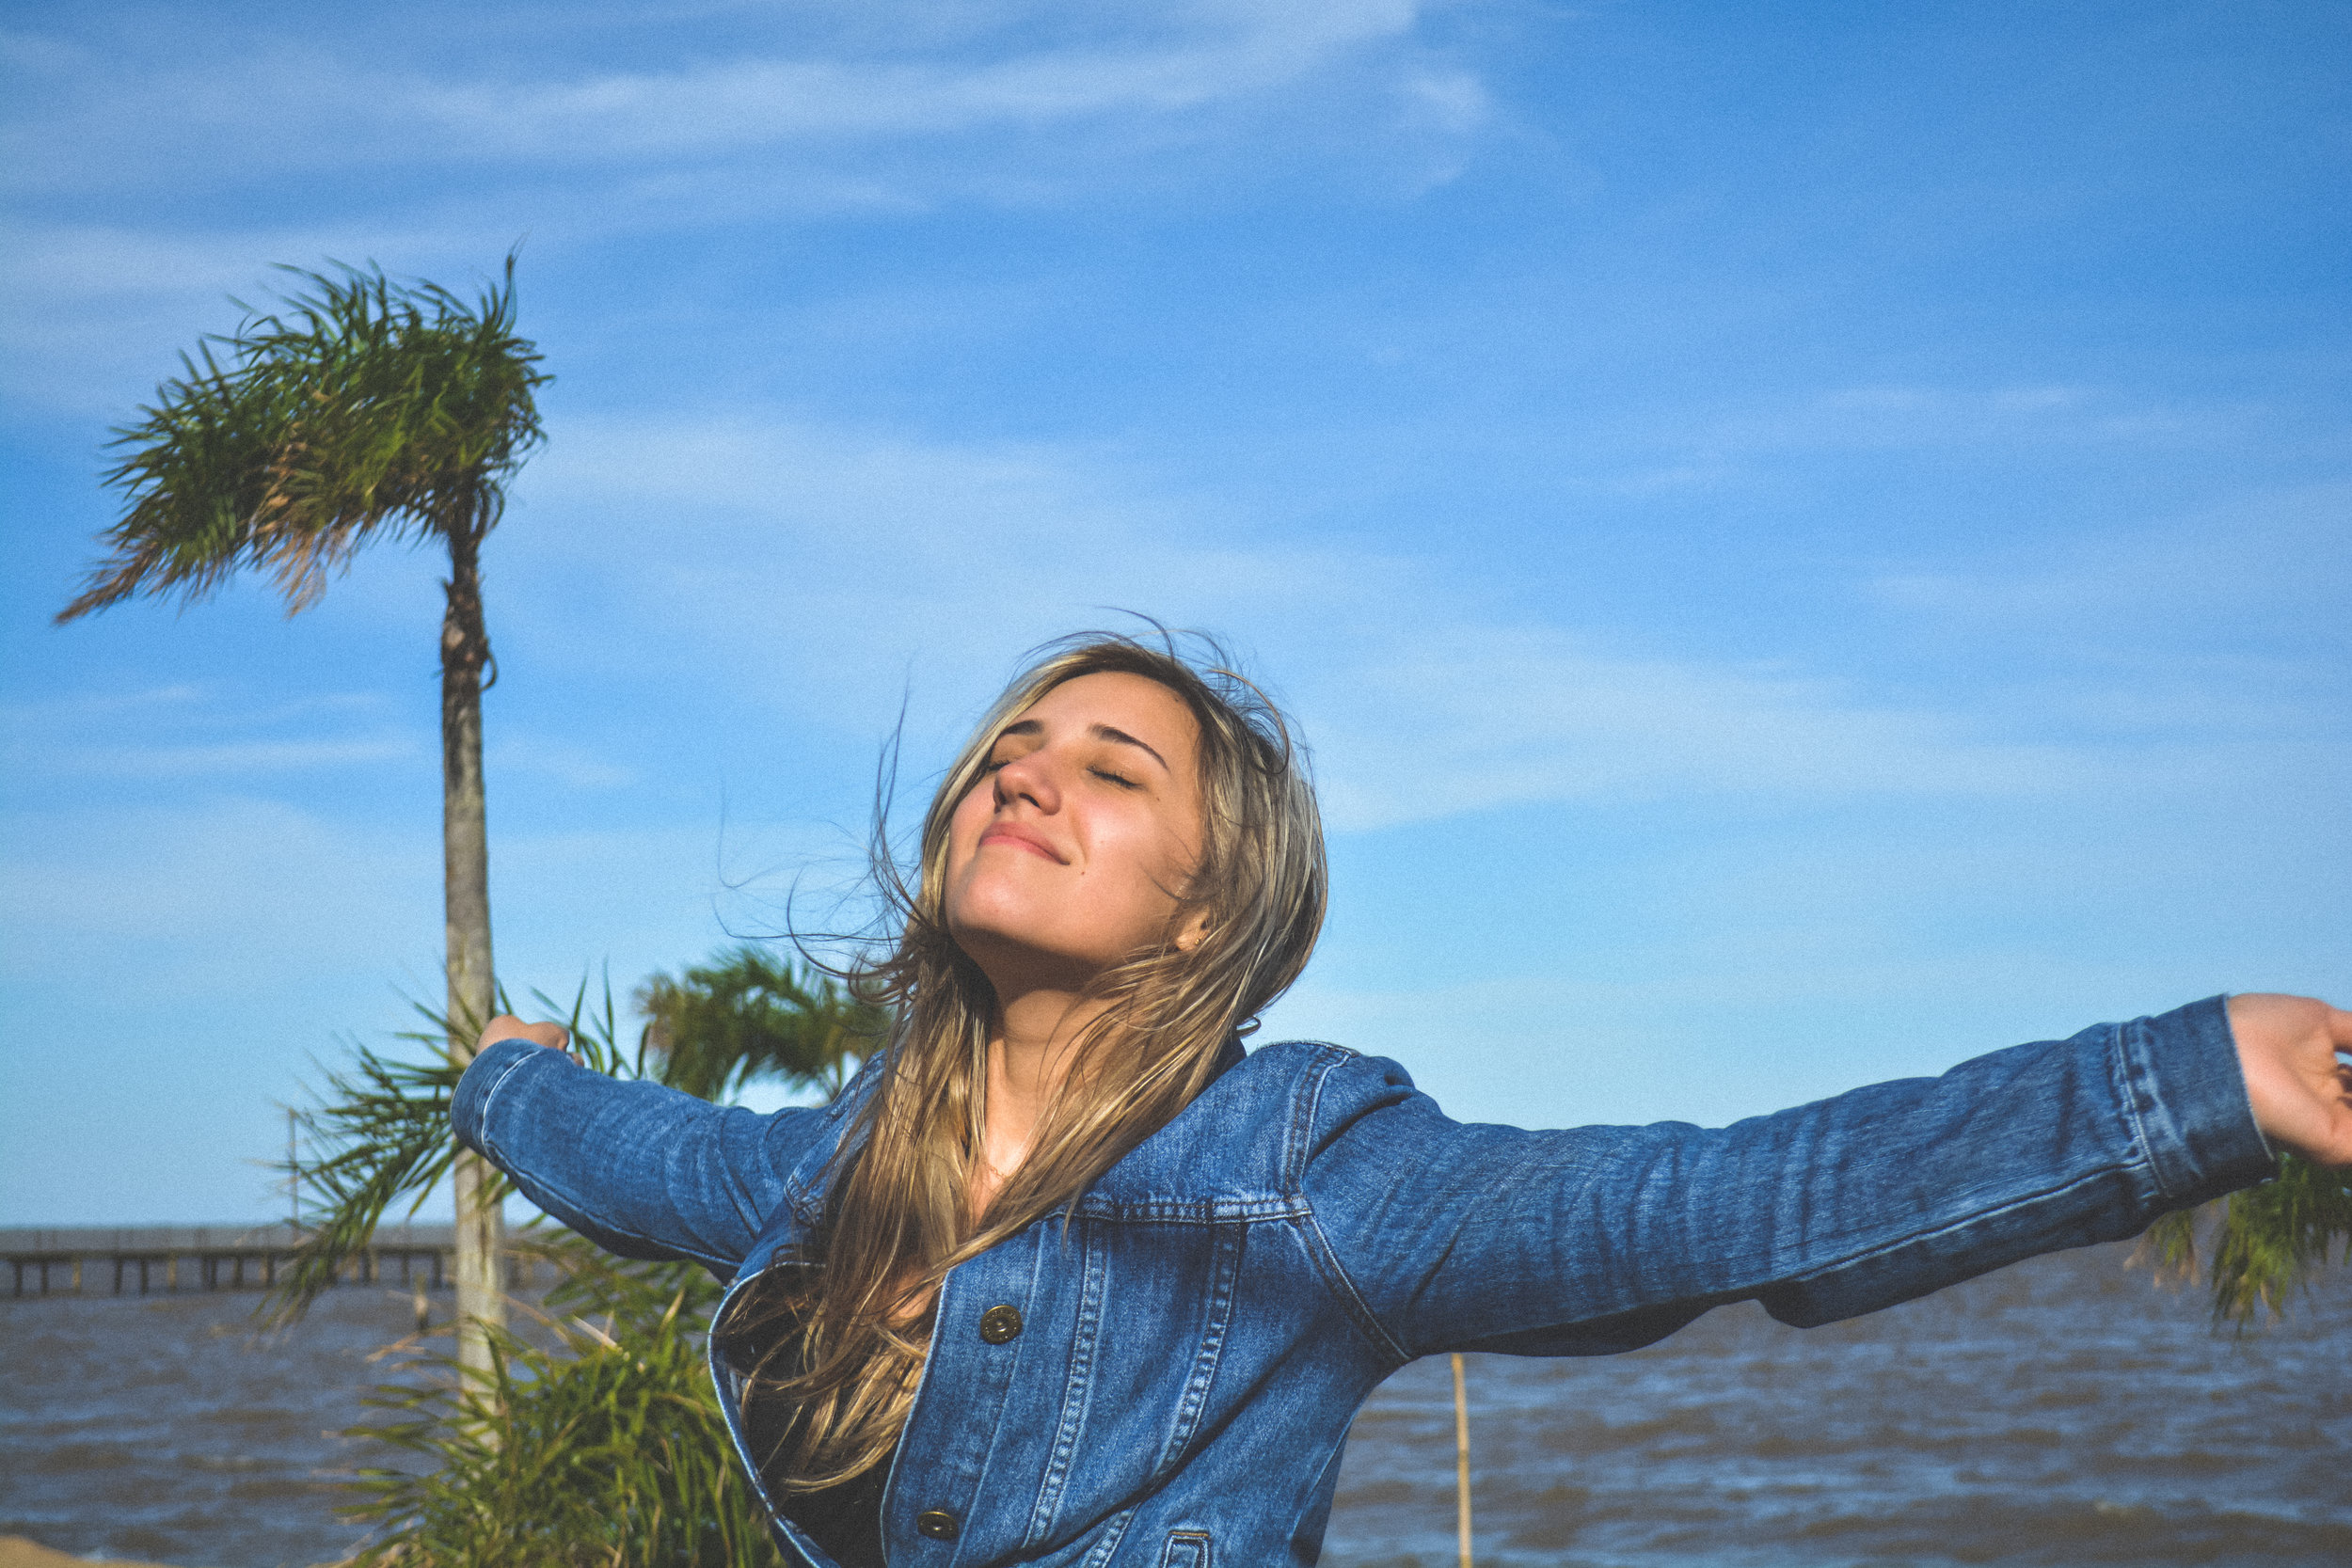 Do you know someone who seems optimistic and upbeat most of the time? Chances are that they are resilient. Staying optimistic during dark periods can be difficult, but maintaining a hopeful outlook is an important part of resiliency.